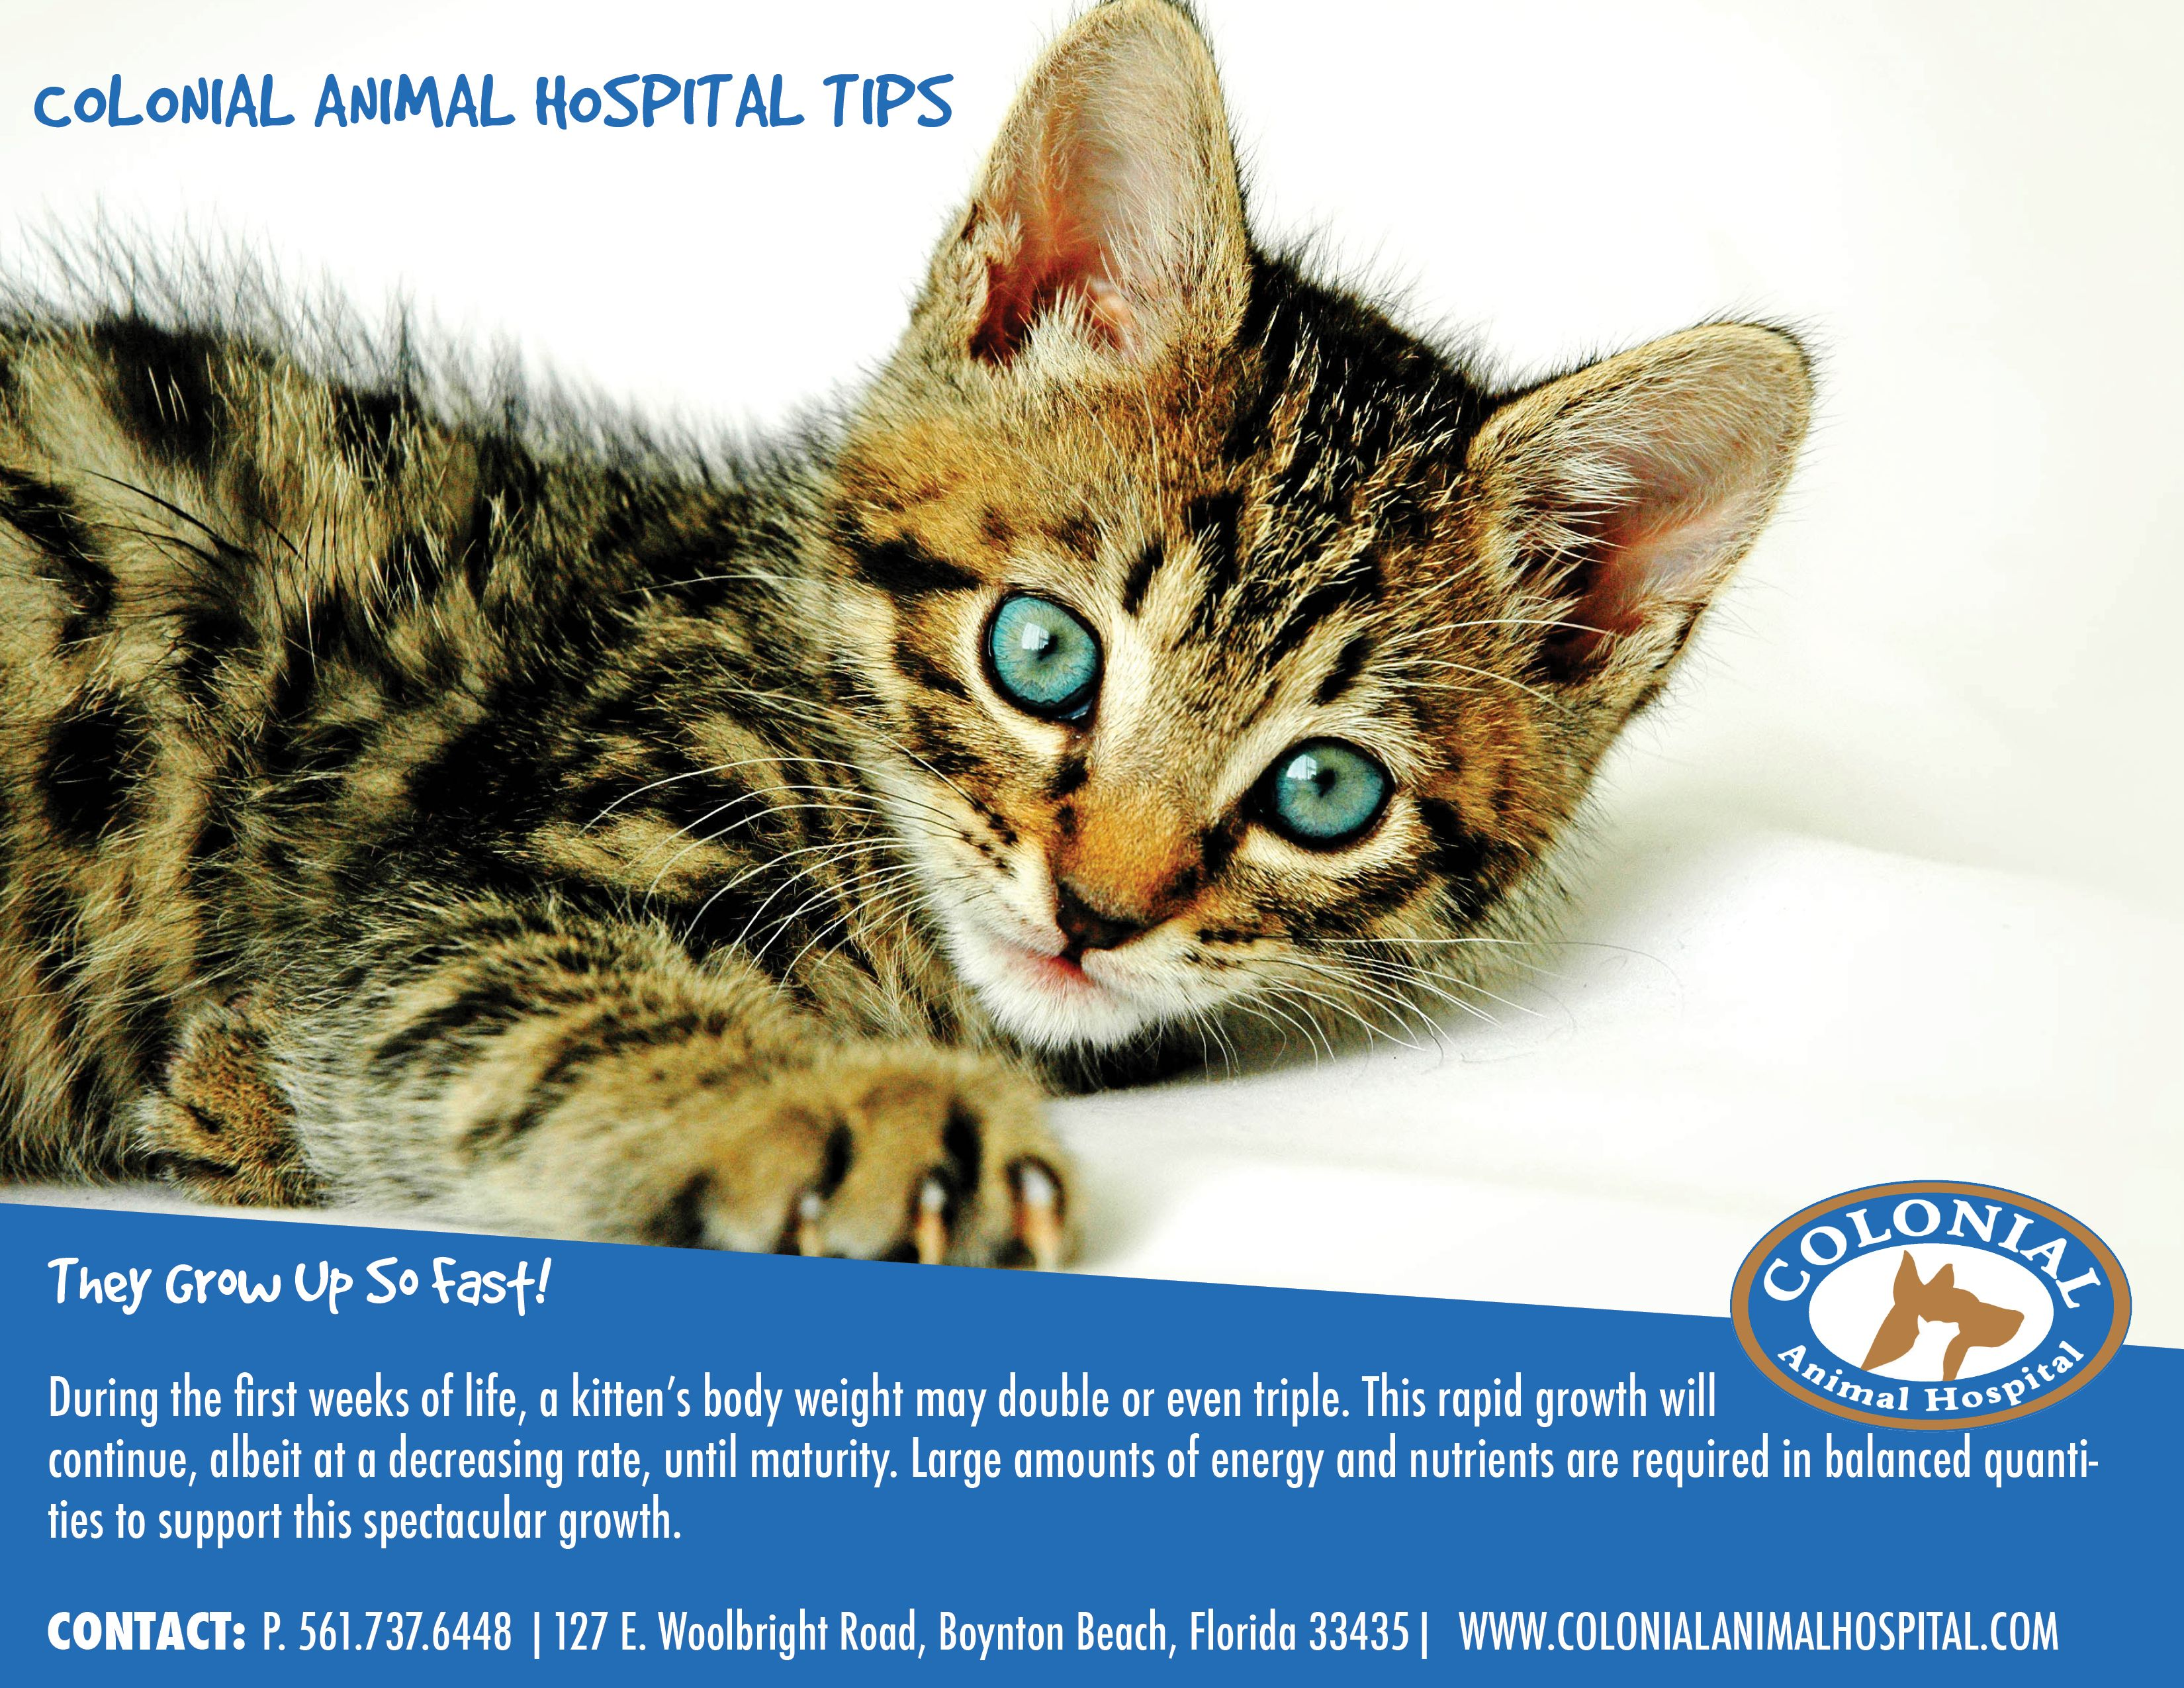 Colonial Animal Hospital Check Out Some Helpful Tips For Kittens Animal Hospital Animals Kittens